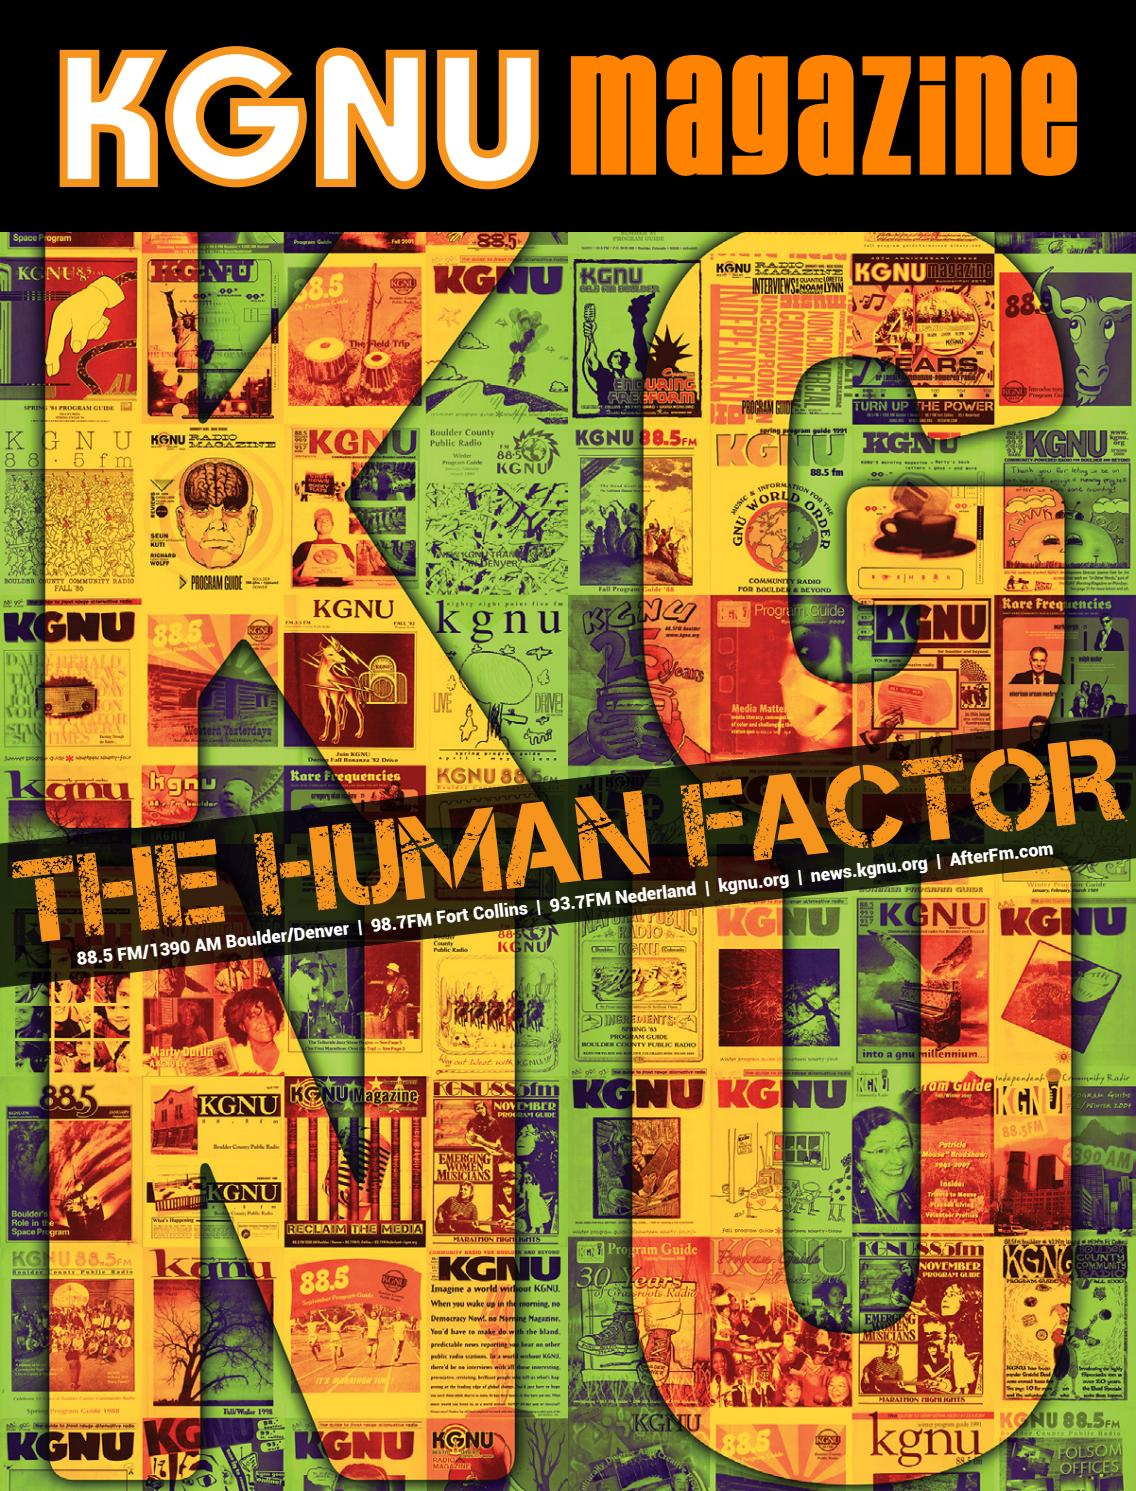 KGNU Magazine 2019: The Human Factor Issue by KGNU AM/FM